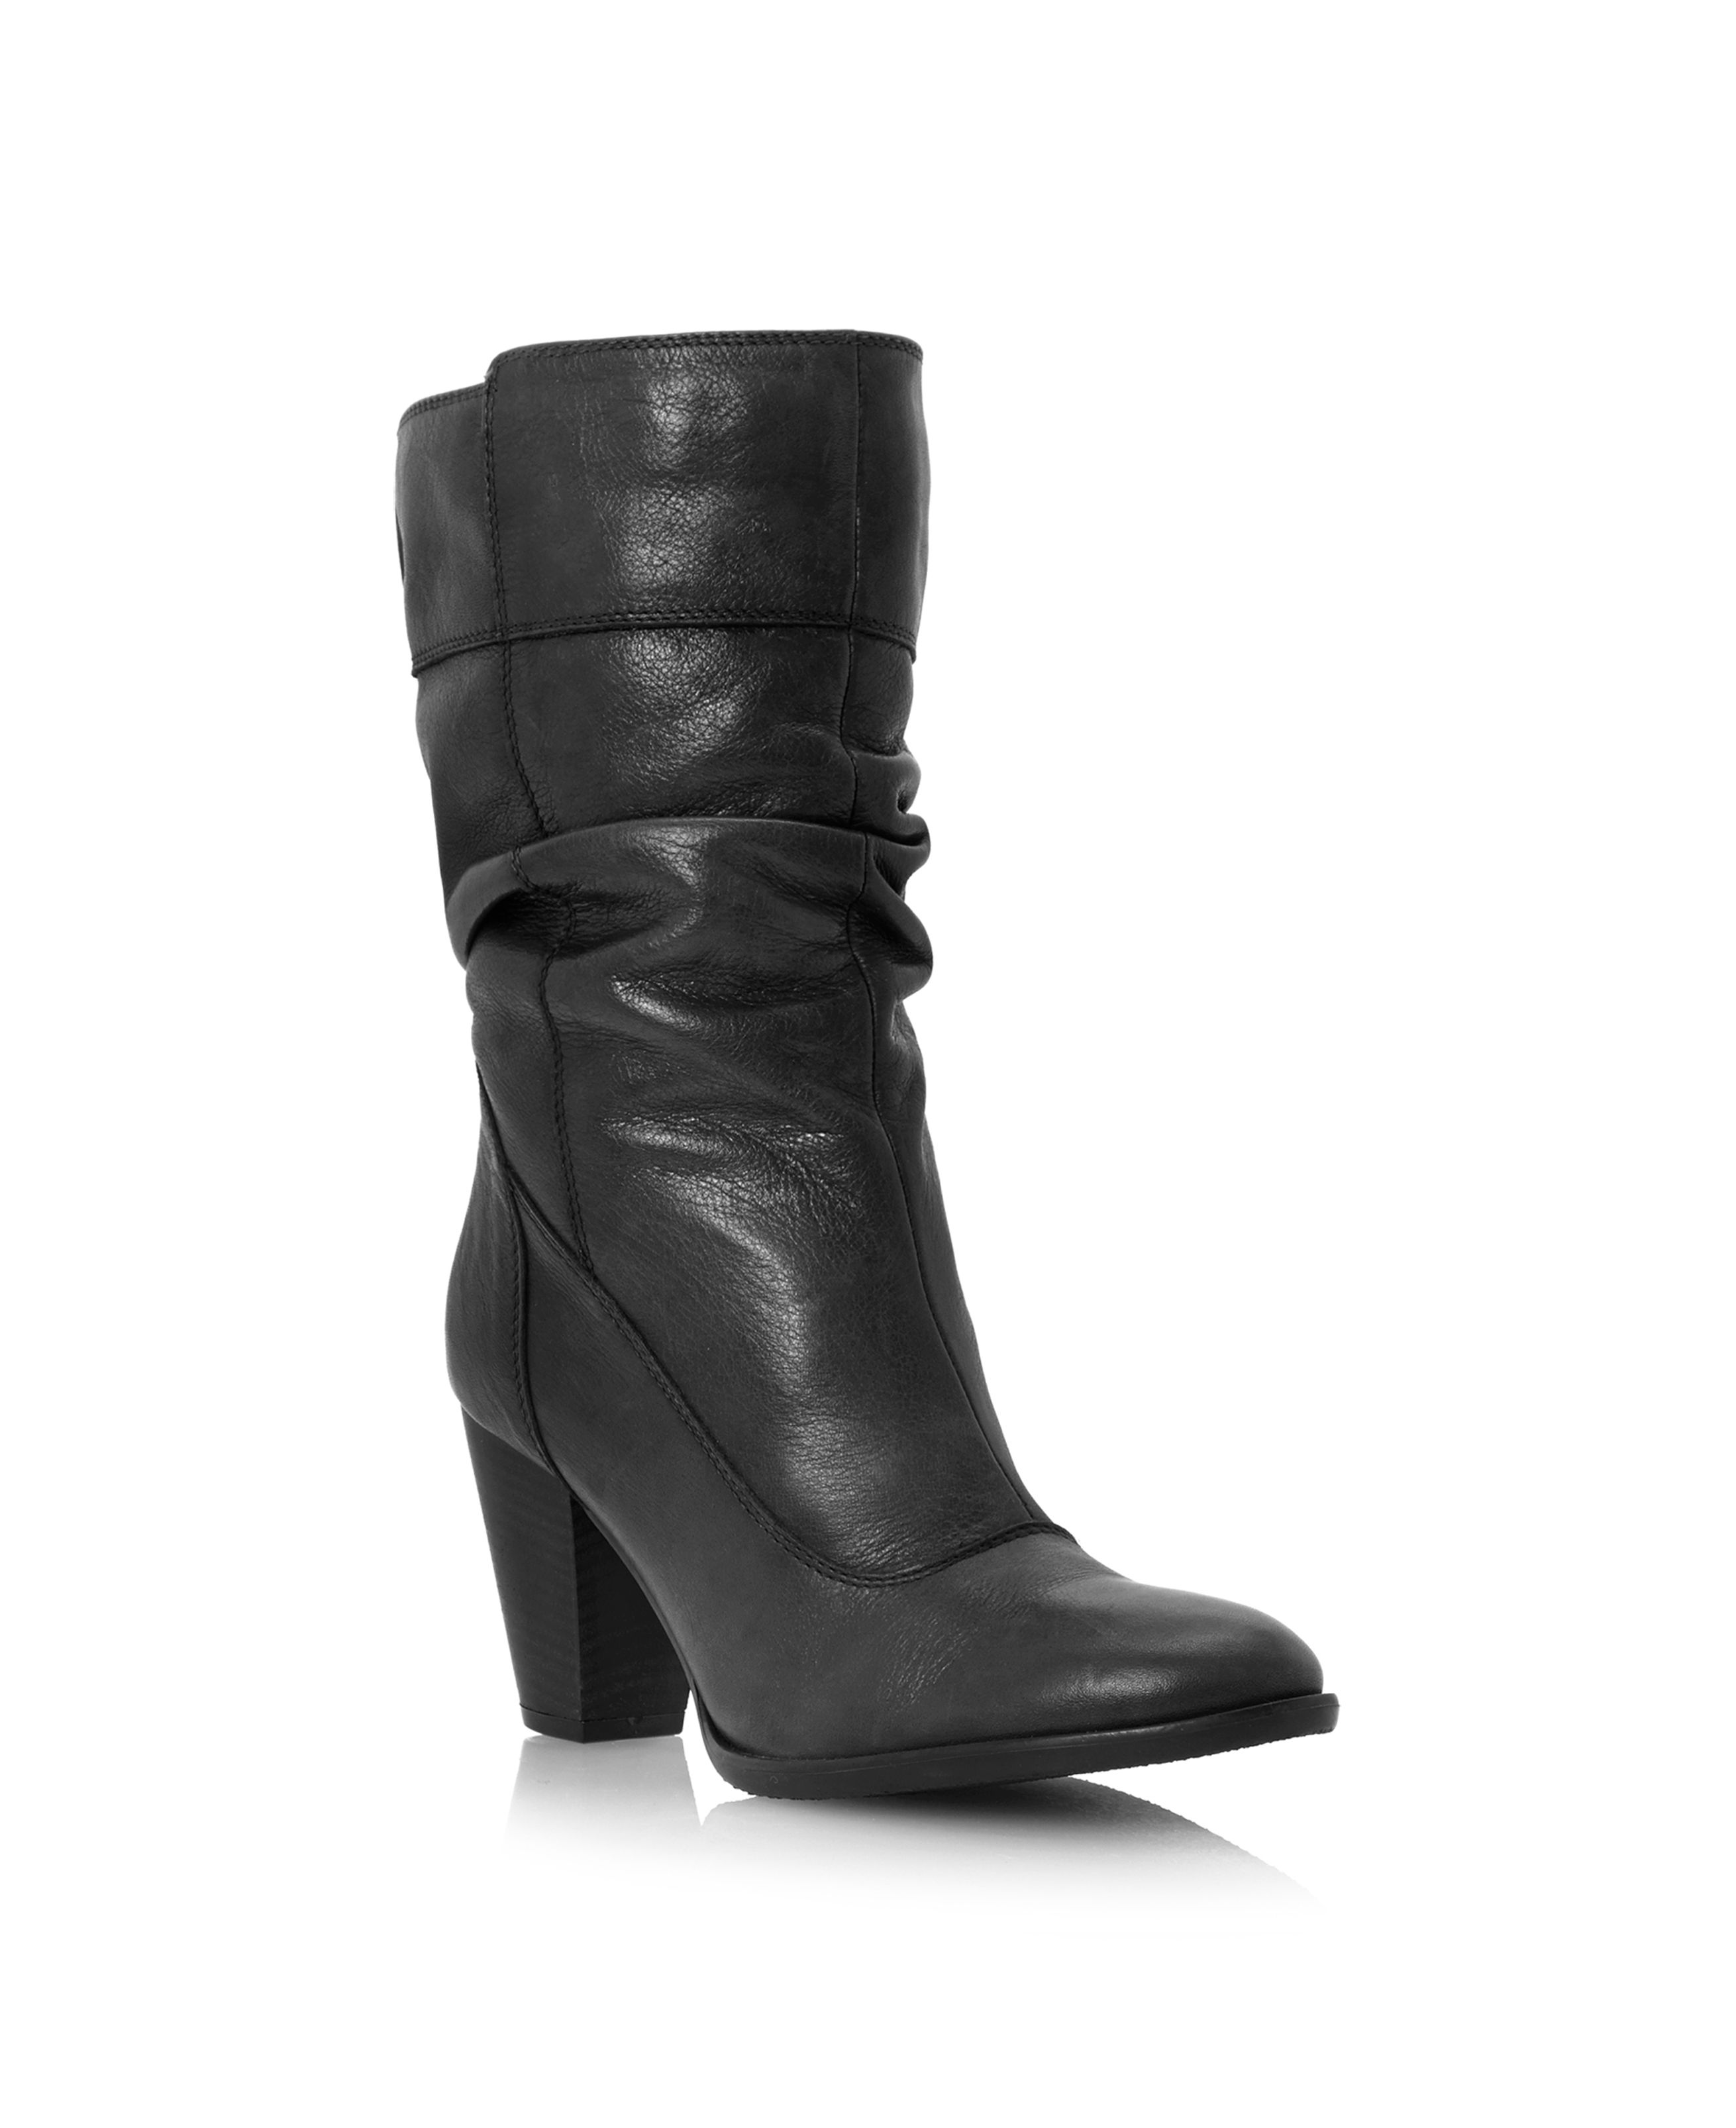 Dune Rad slouch block heel calf boots Black Leather